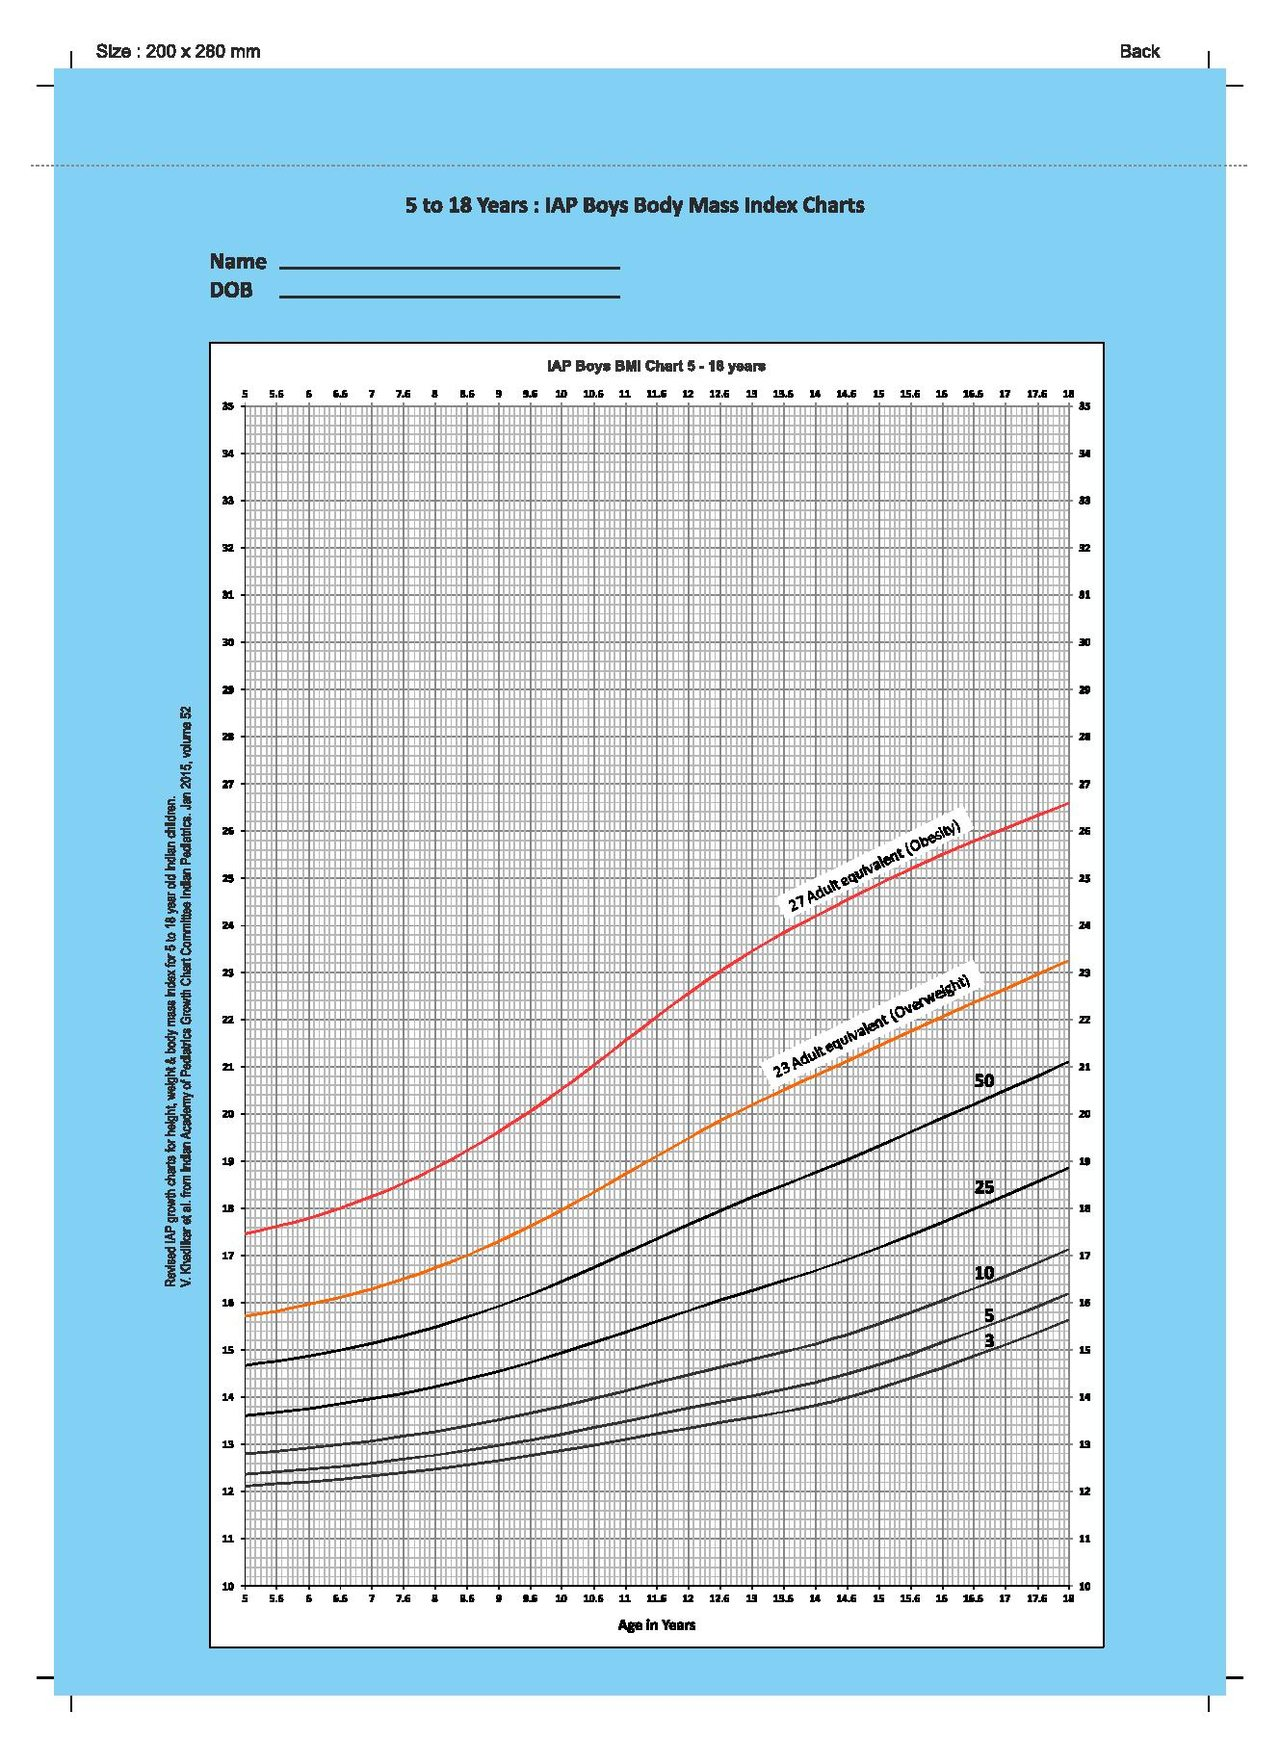 Boys 518 years bmi chart iap dailyrounds nvjuhfo Image collections